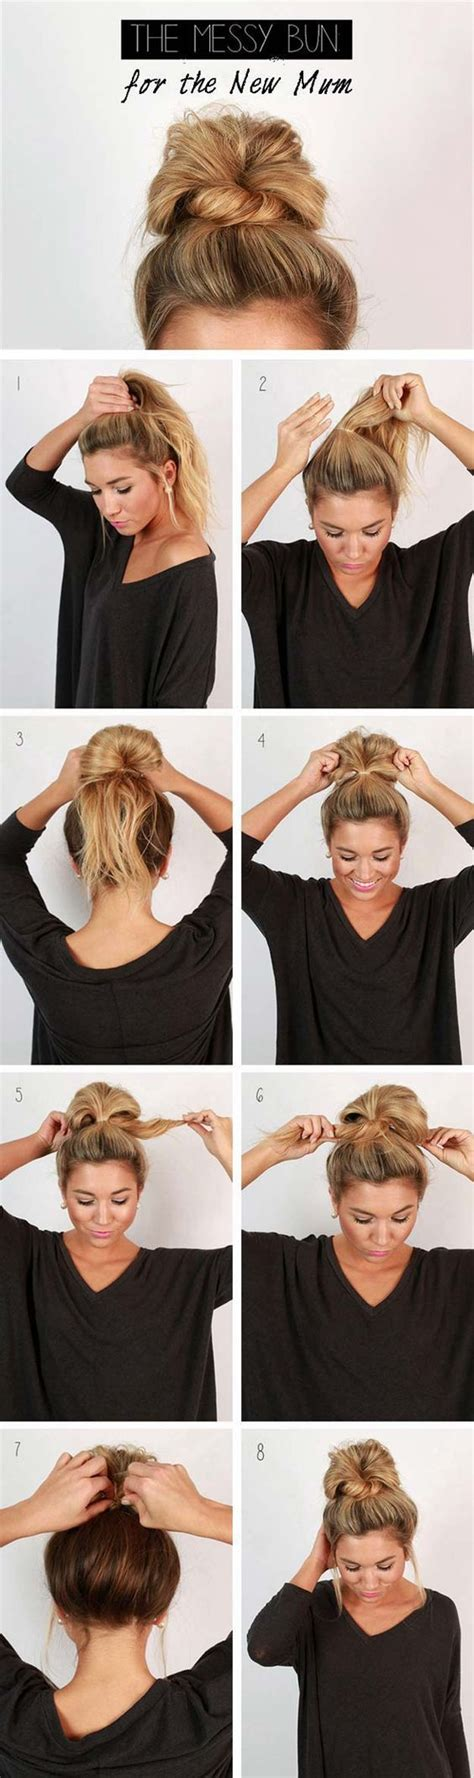 Cool Hairstyles For School Step By Step by 25 Best Ideas About Step By Step Hairstyles On